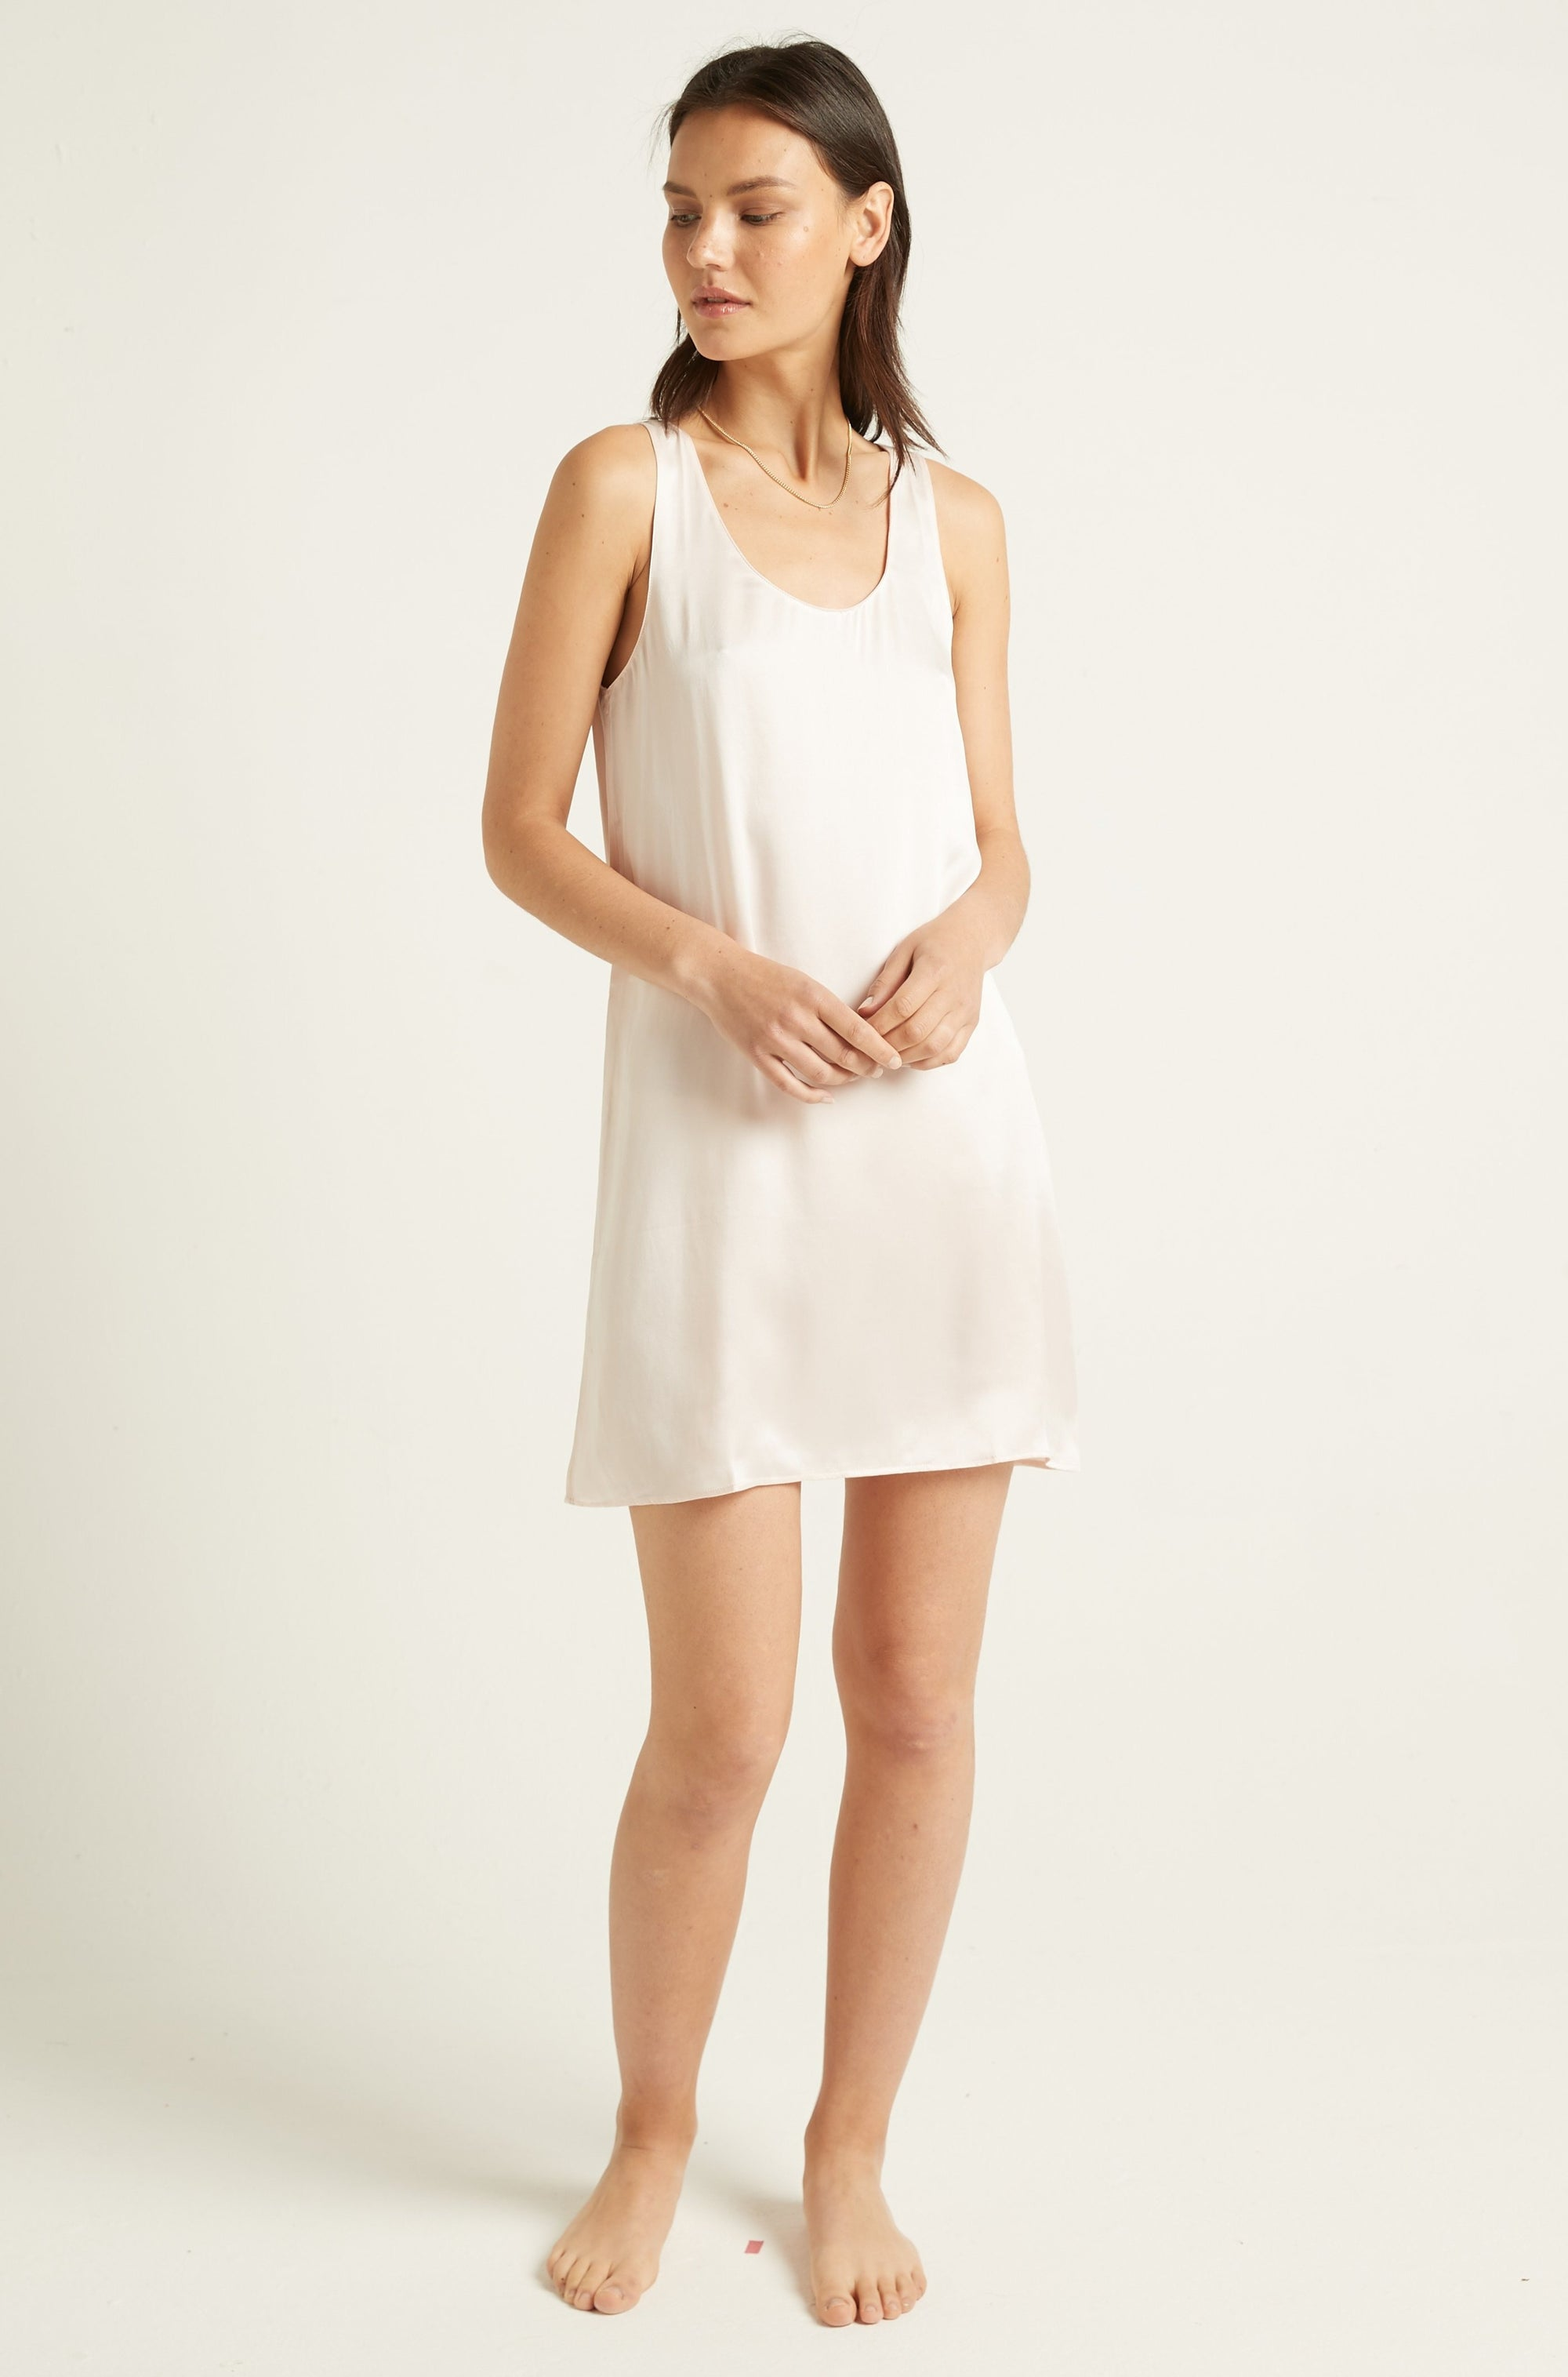 GINIA,PRE-ORDER Washable Silk Chemise,Chemise